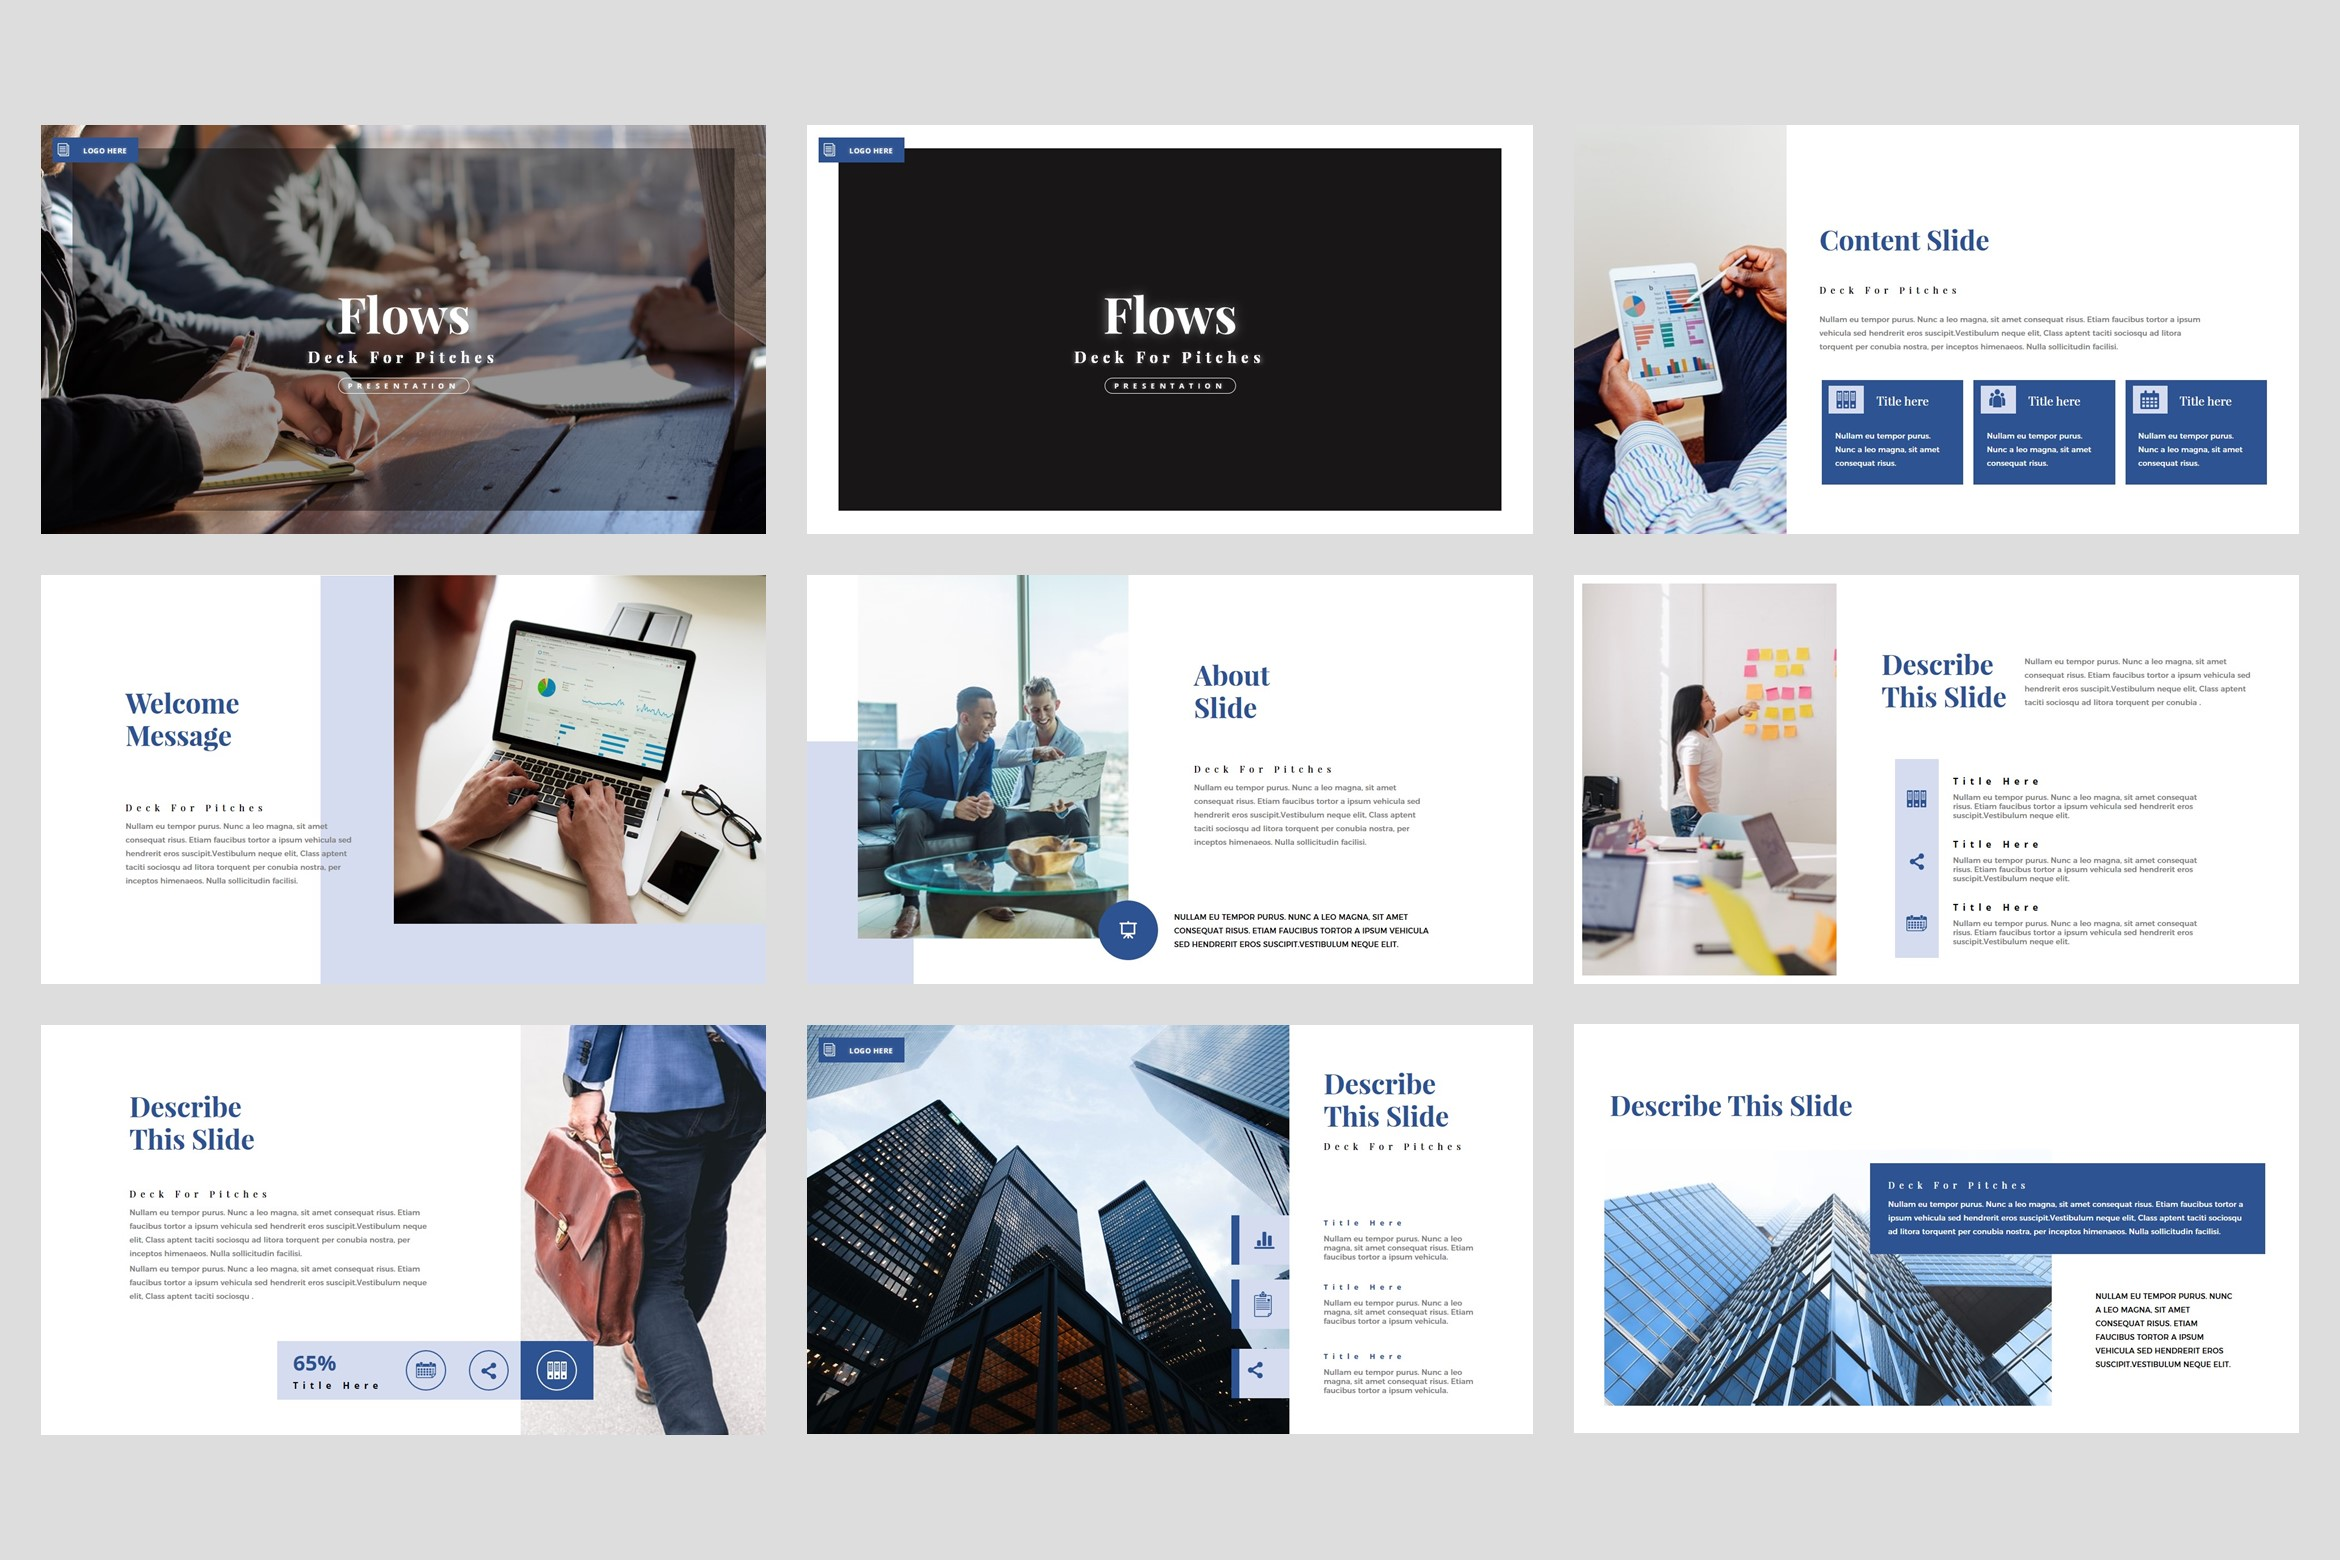 Flows - Pitch Deck PowerPoint Template example image 2